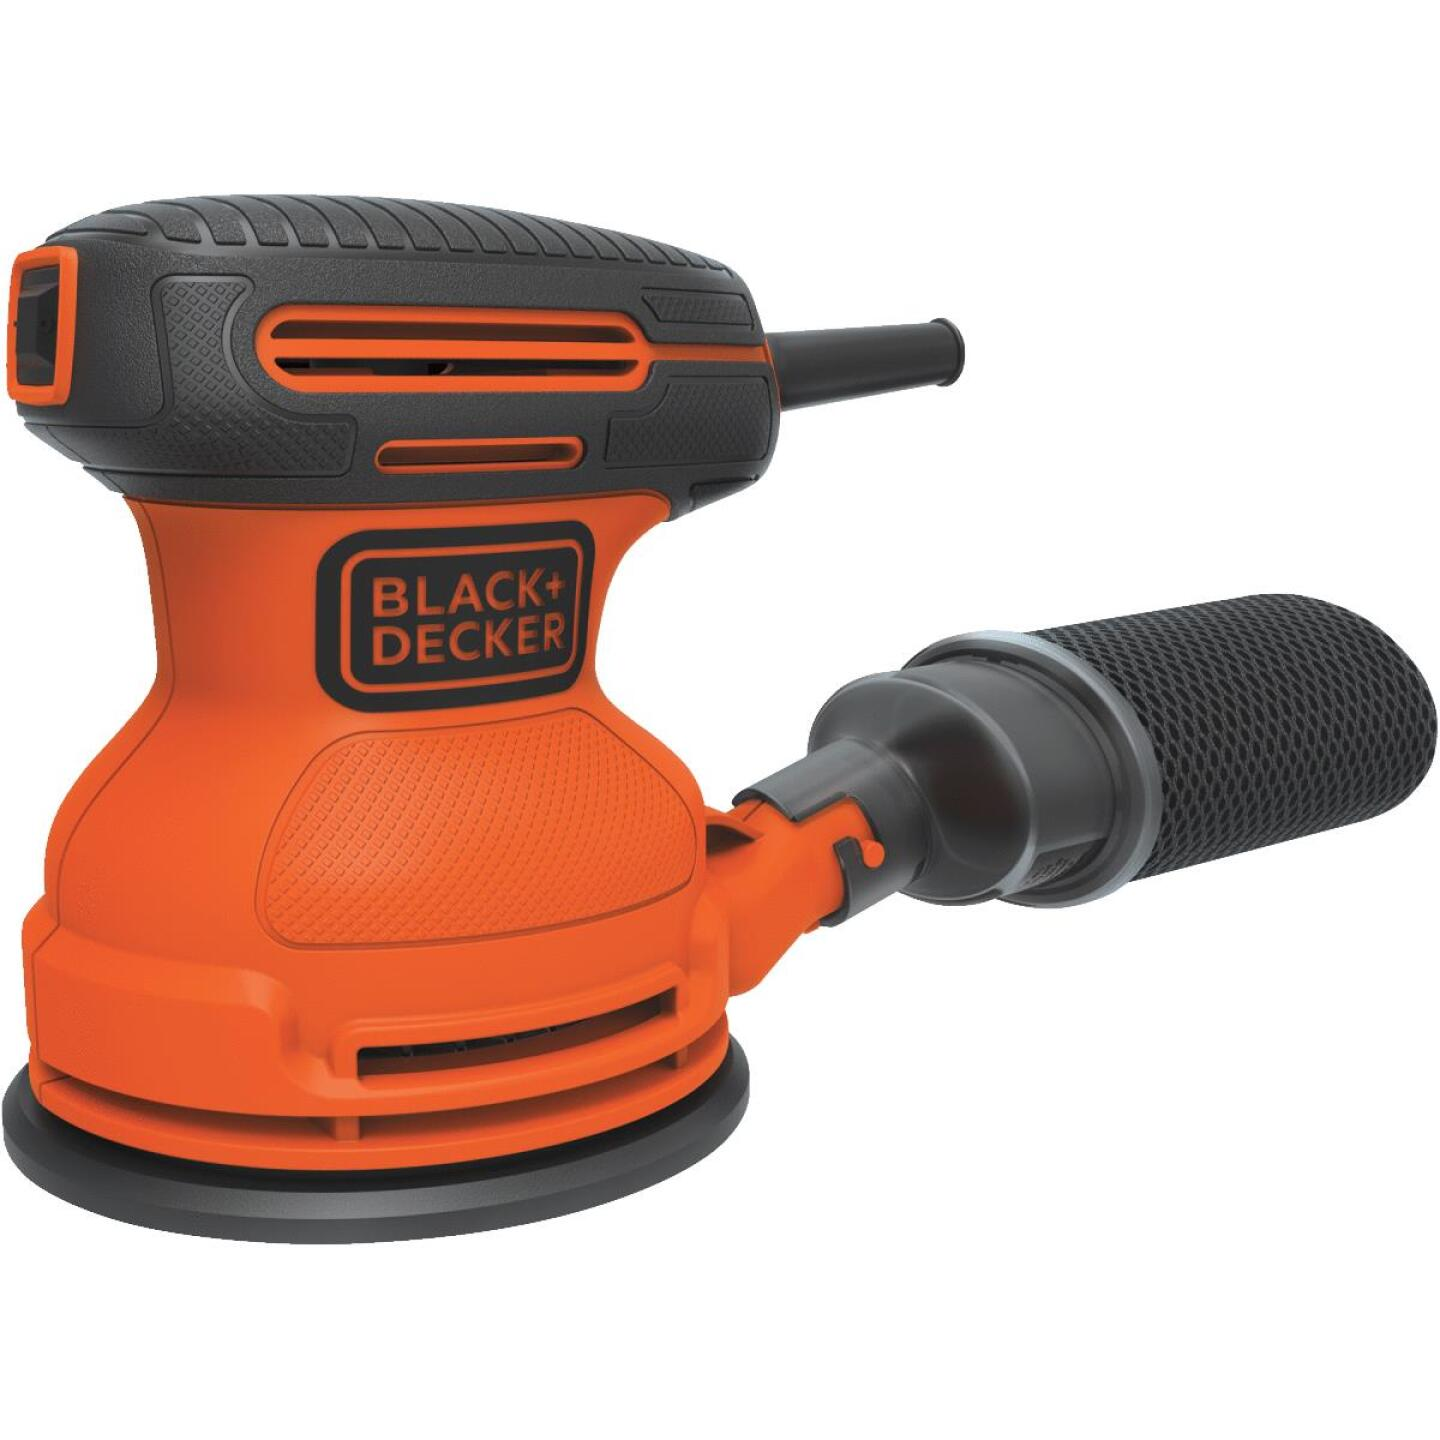 Black & Decker 5 In. 2.0A Finish Sander Image 3